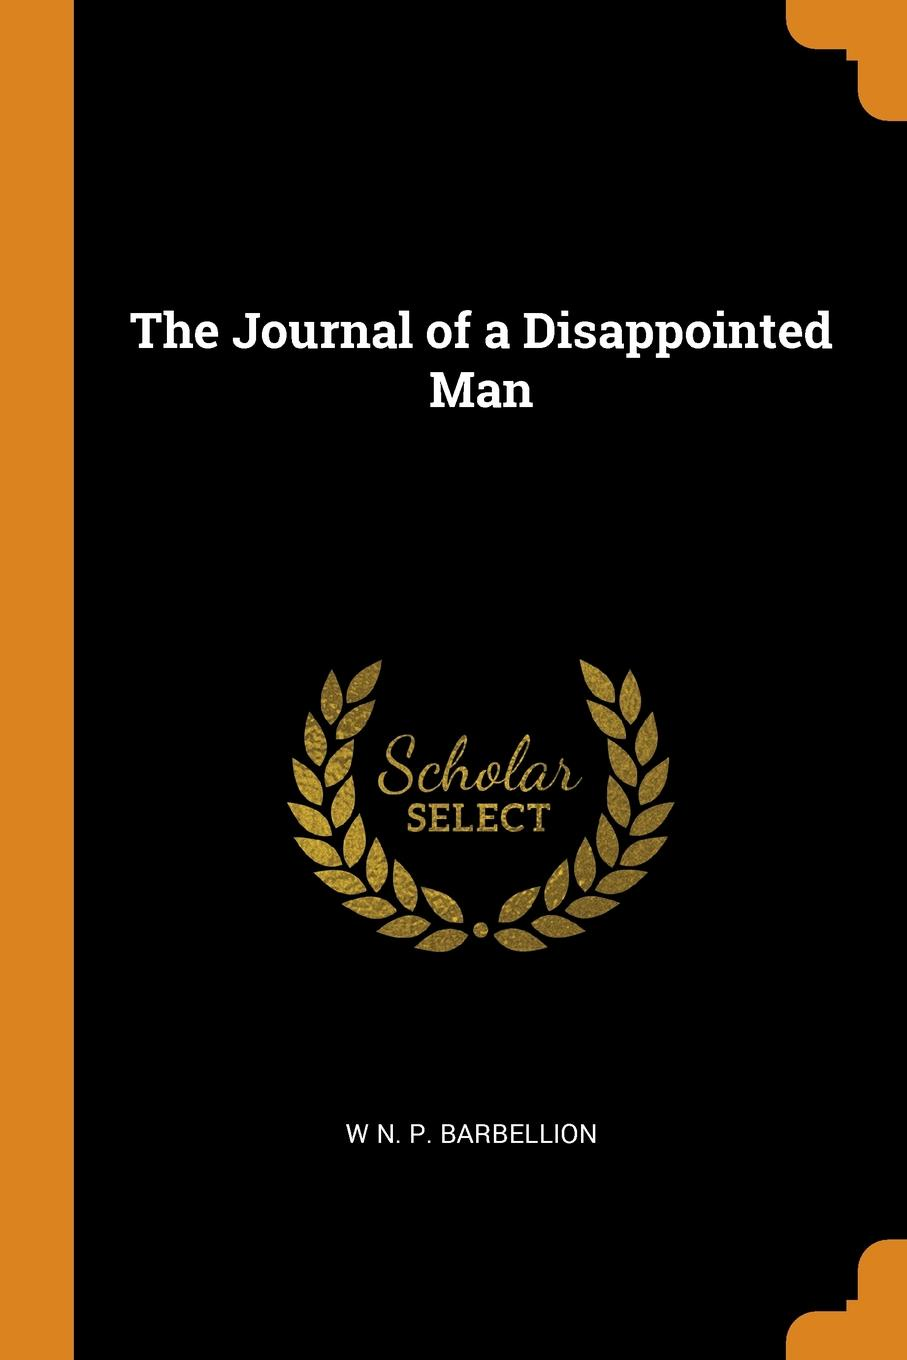 W N. P. Barbellion The Journal of a Disappointed Man w n p barbellion the journal of a disappointed man